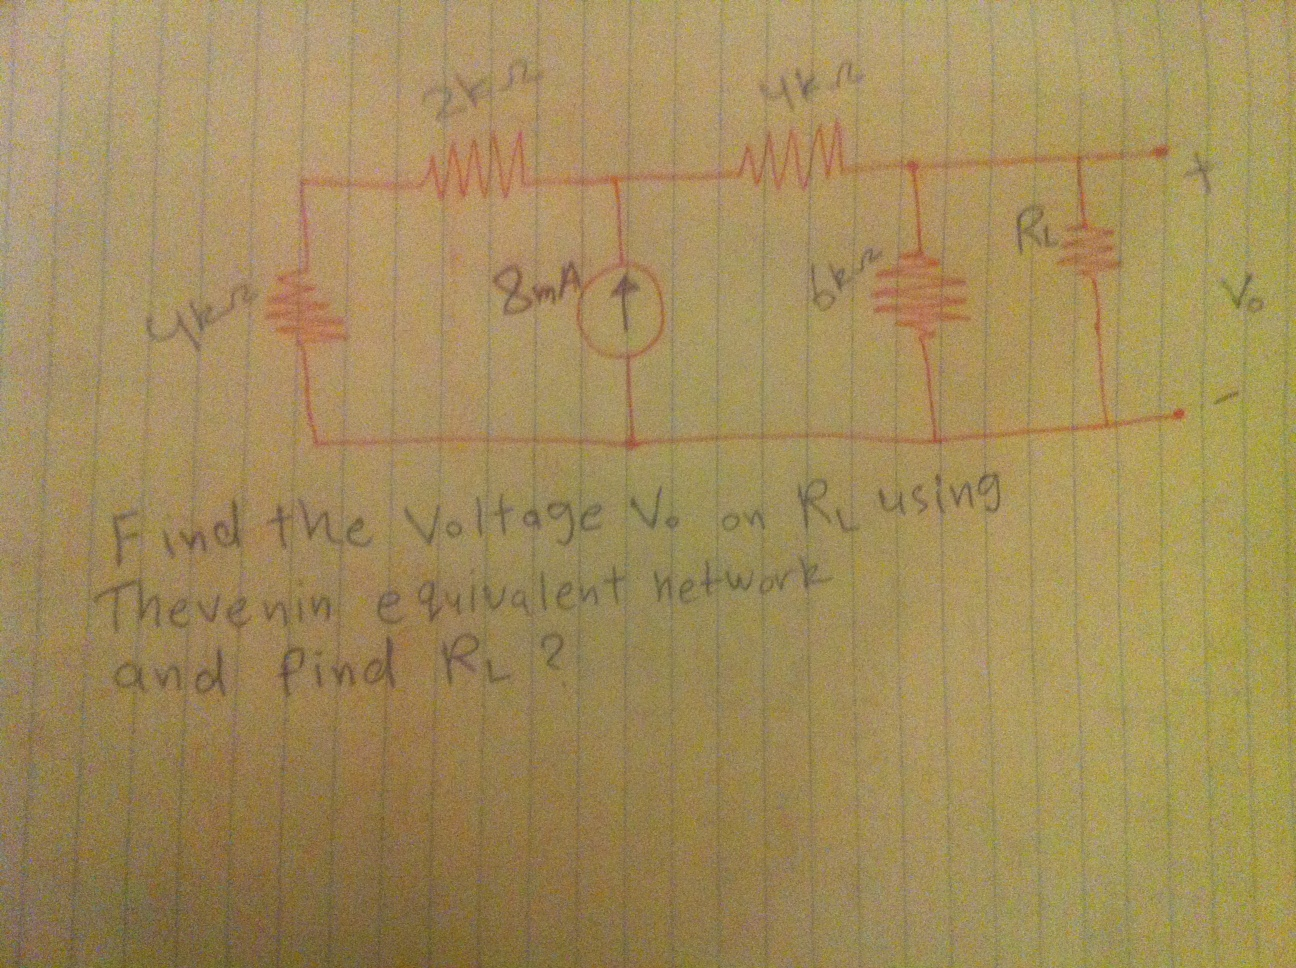 Find the Voltage V0 on RL using Thevenin equivalen